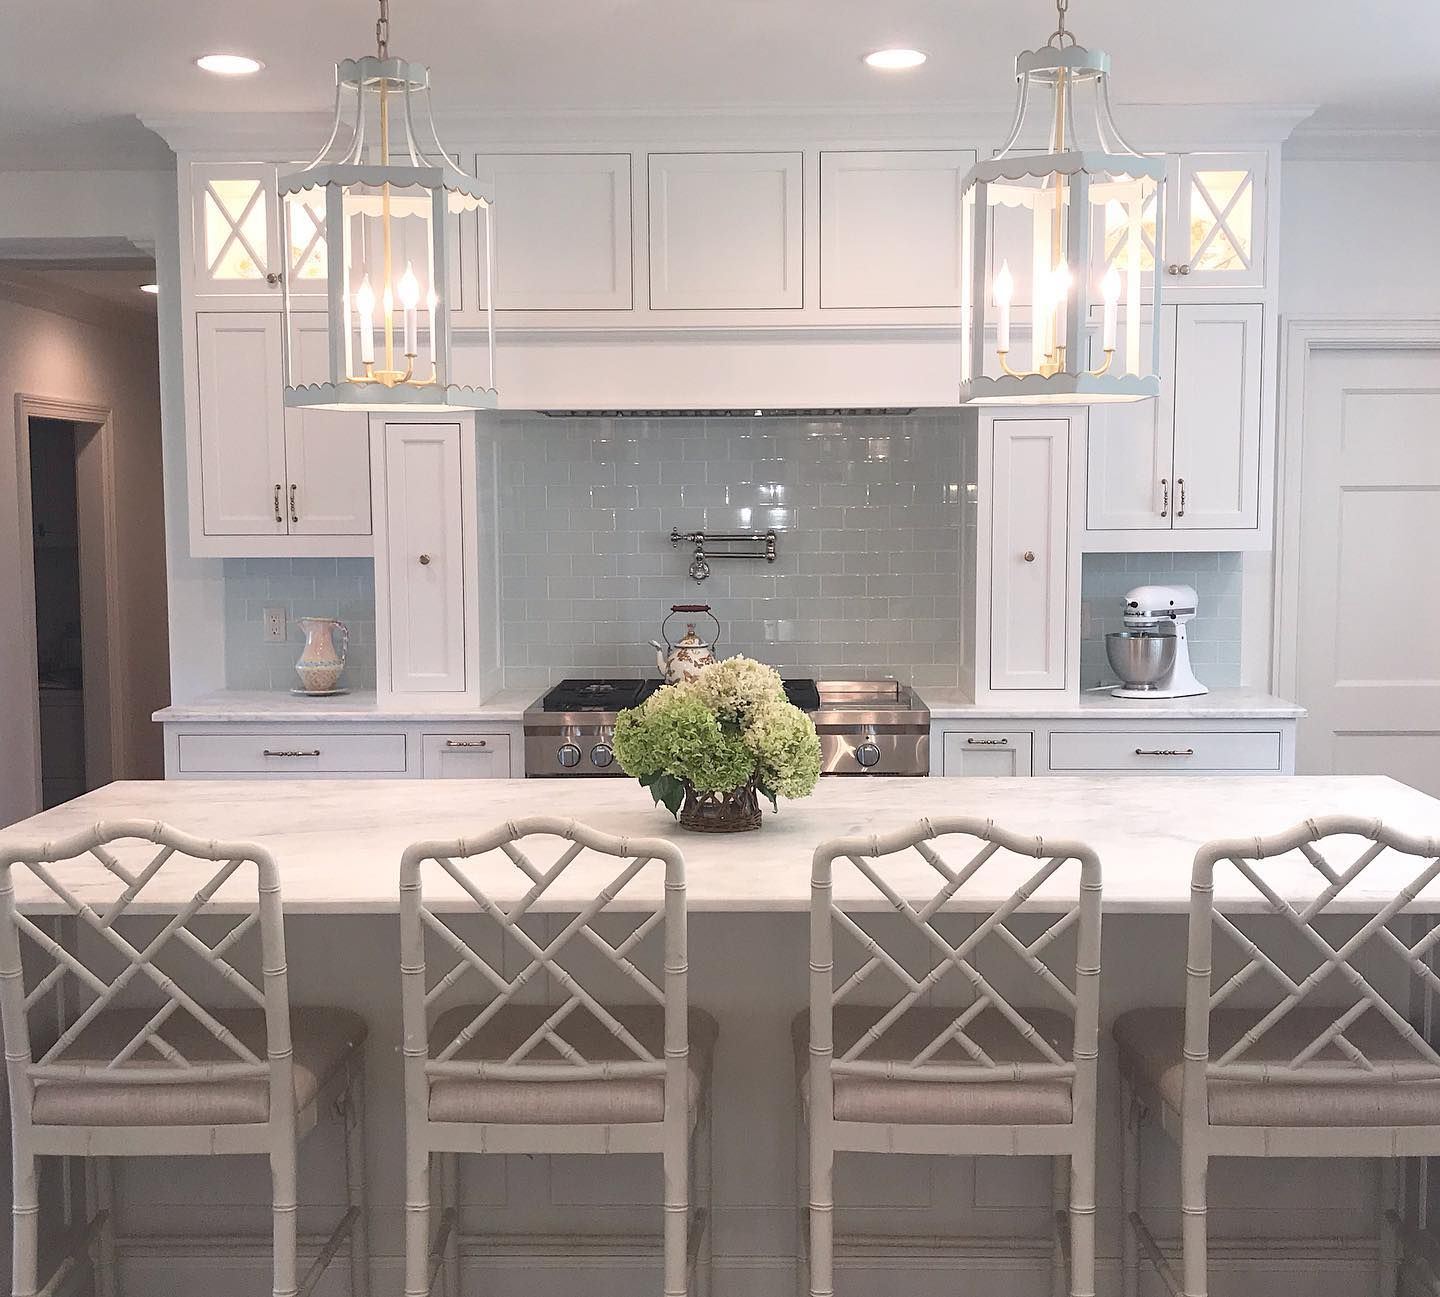 Pin By Katelyn On Dream Home In 2020 Country Kitchen Decor Kitchen Remodel Design Beadboard Kitchen